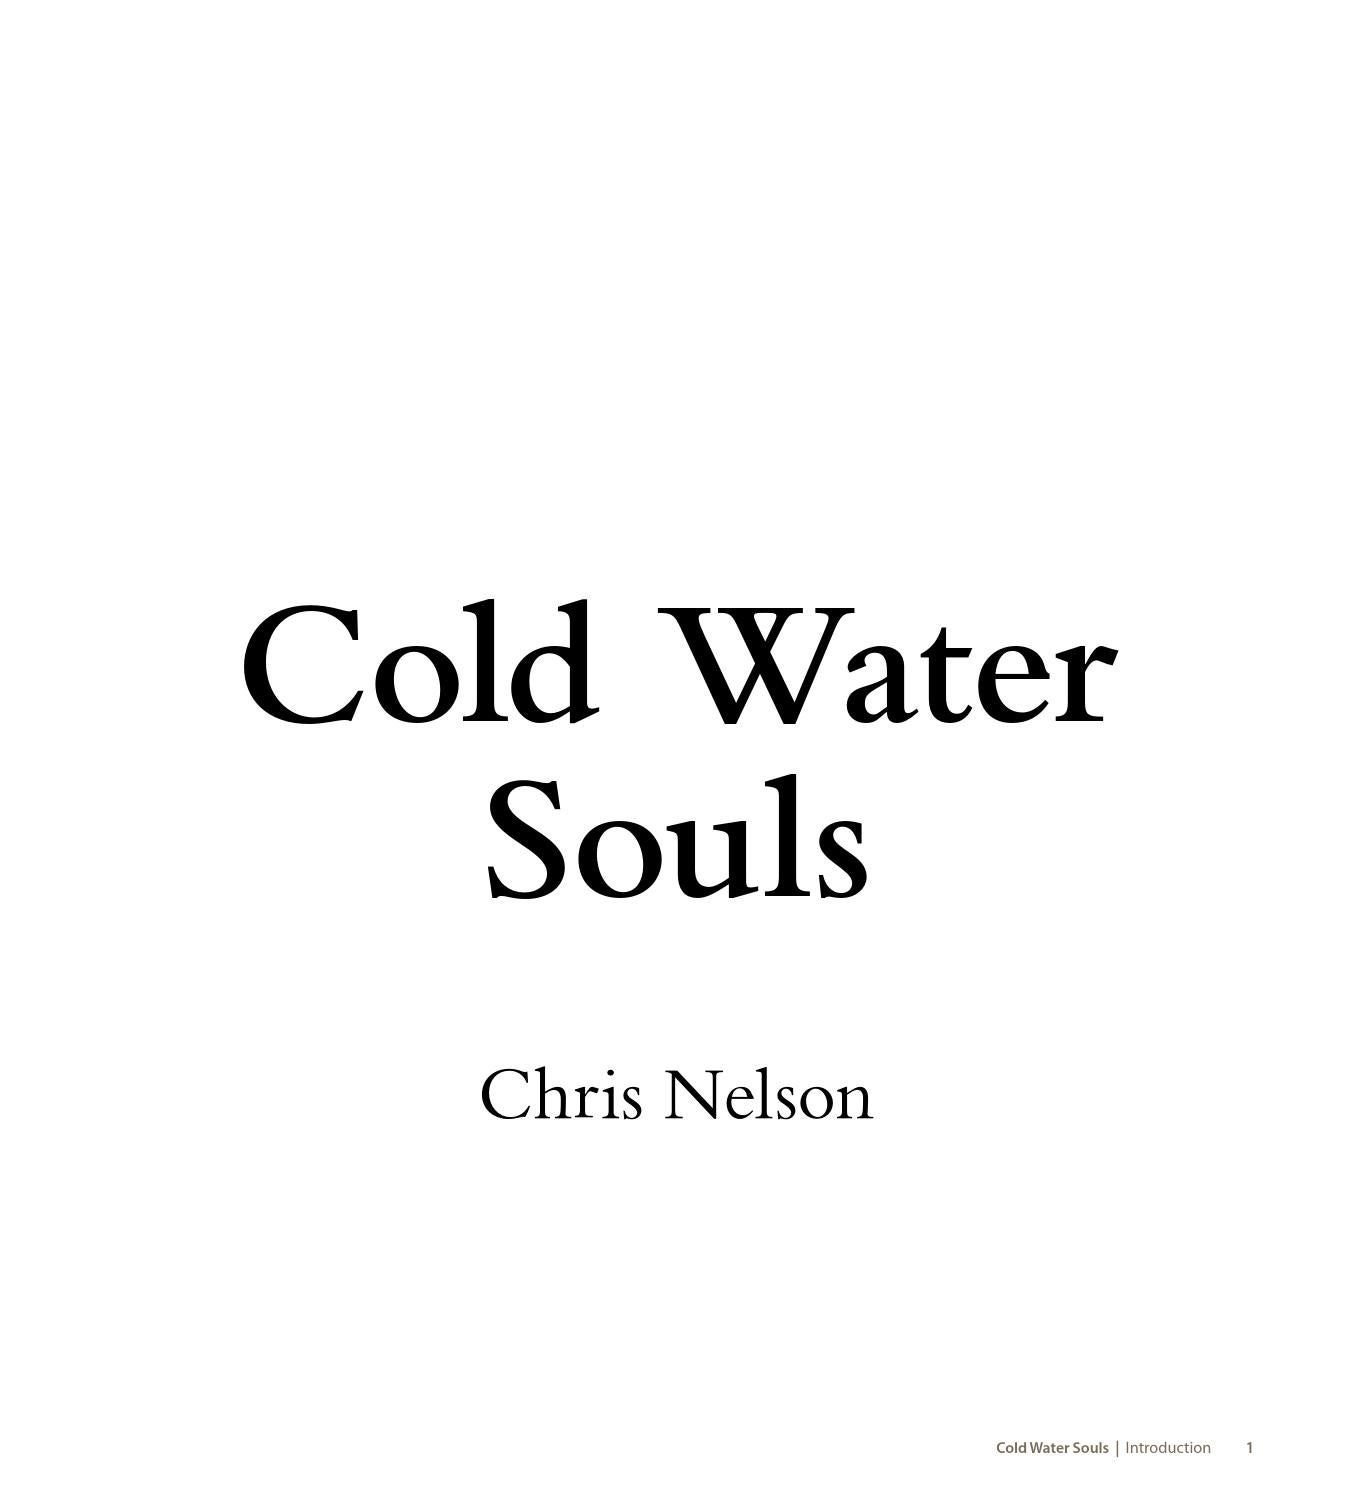 9aa57e6cb3 COLD WATER SOULS - EXTRACT by demi taylor - issuu